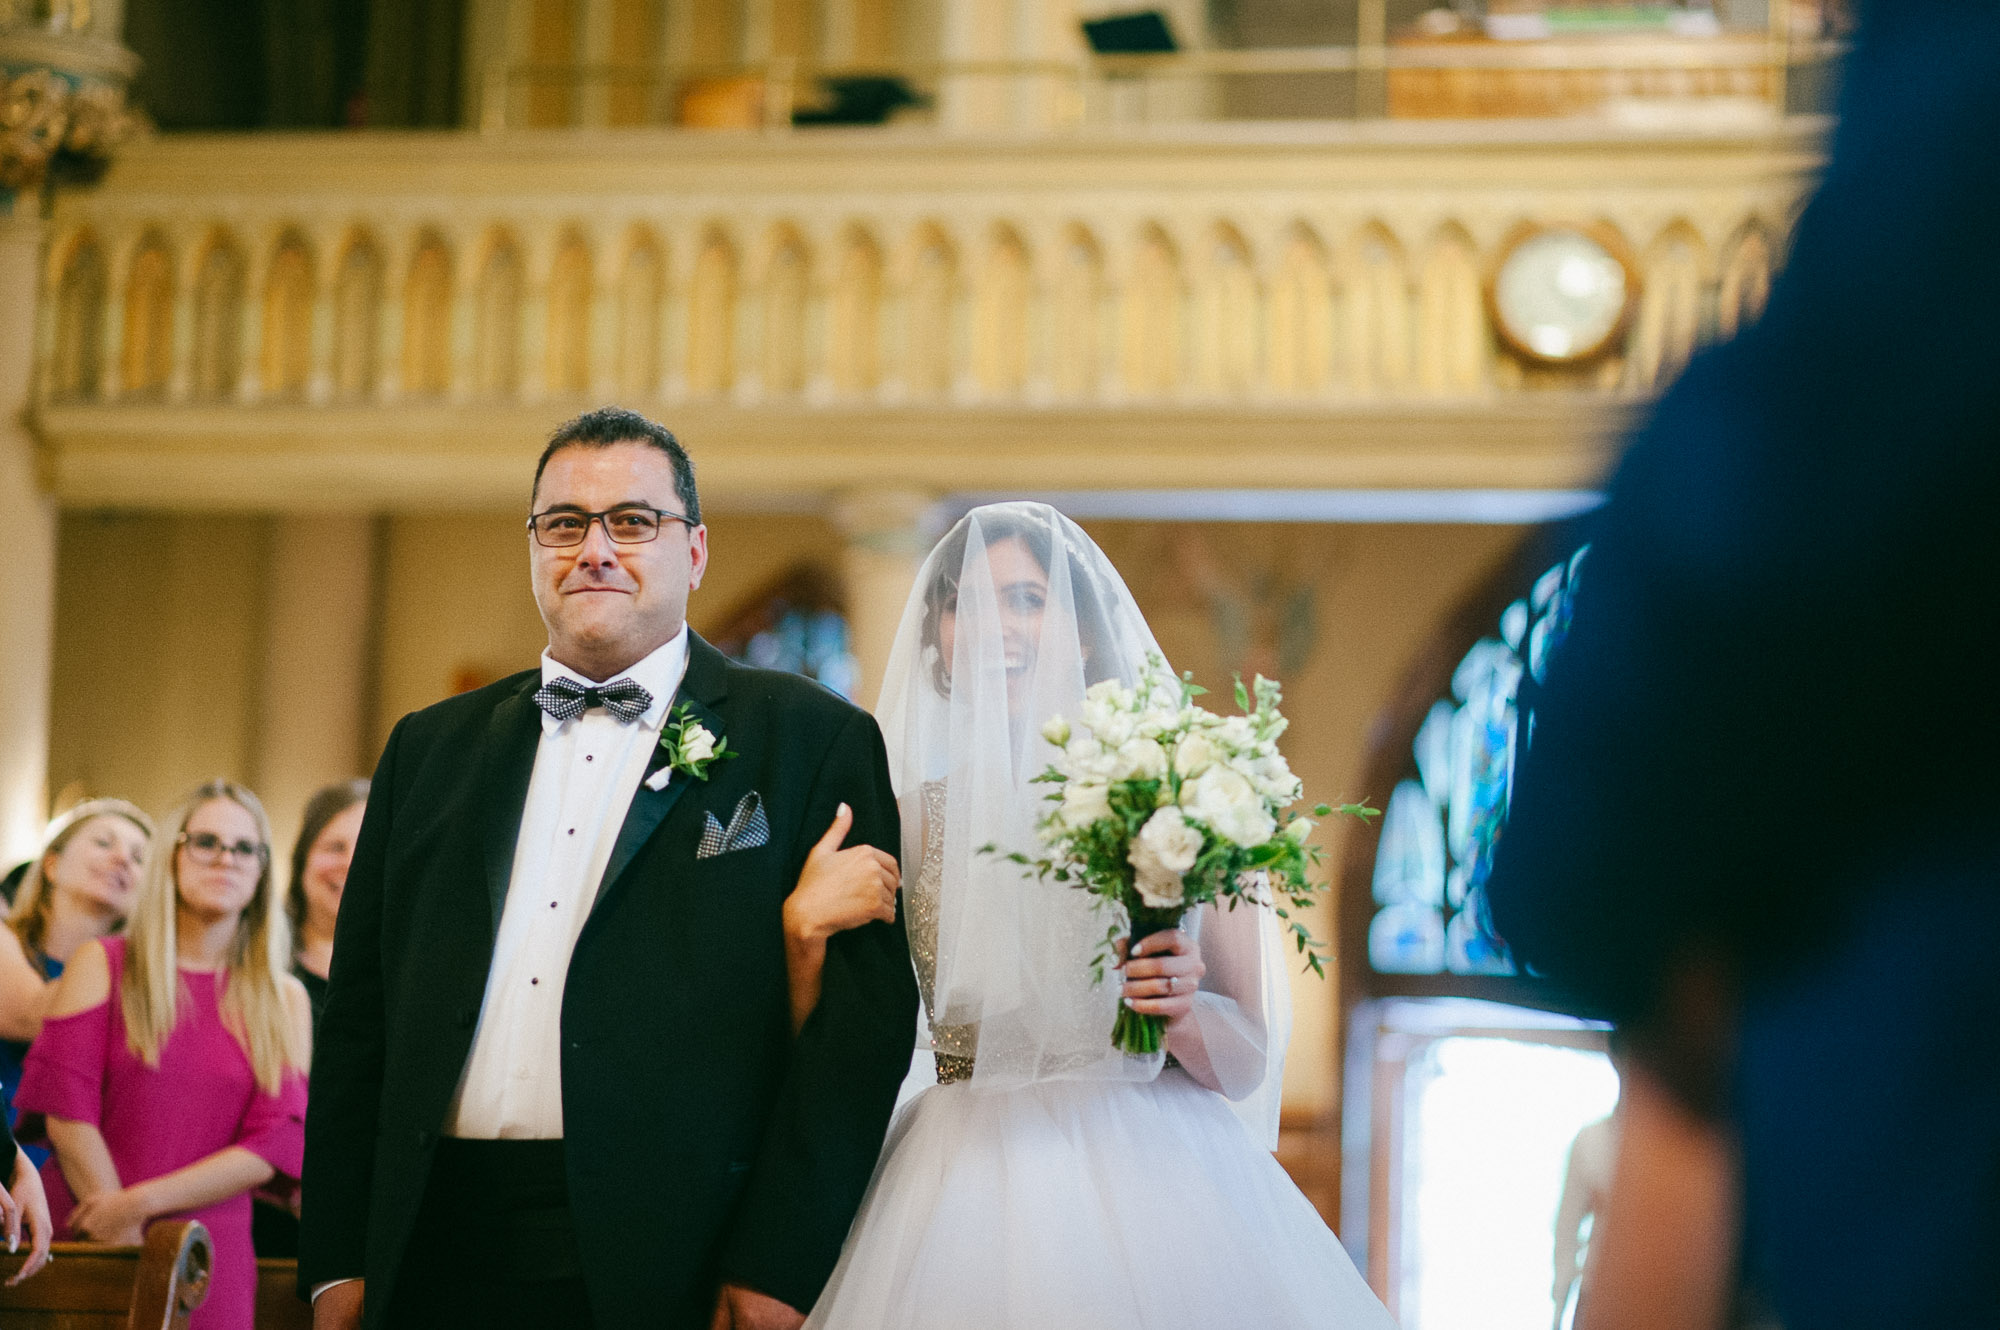 bride-walking-down-aisle-in-church